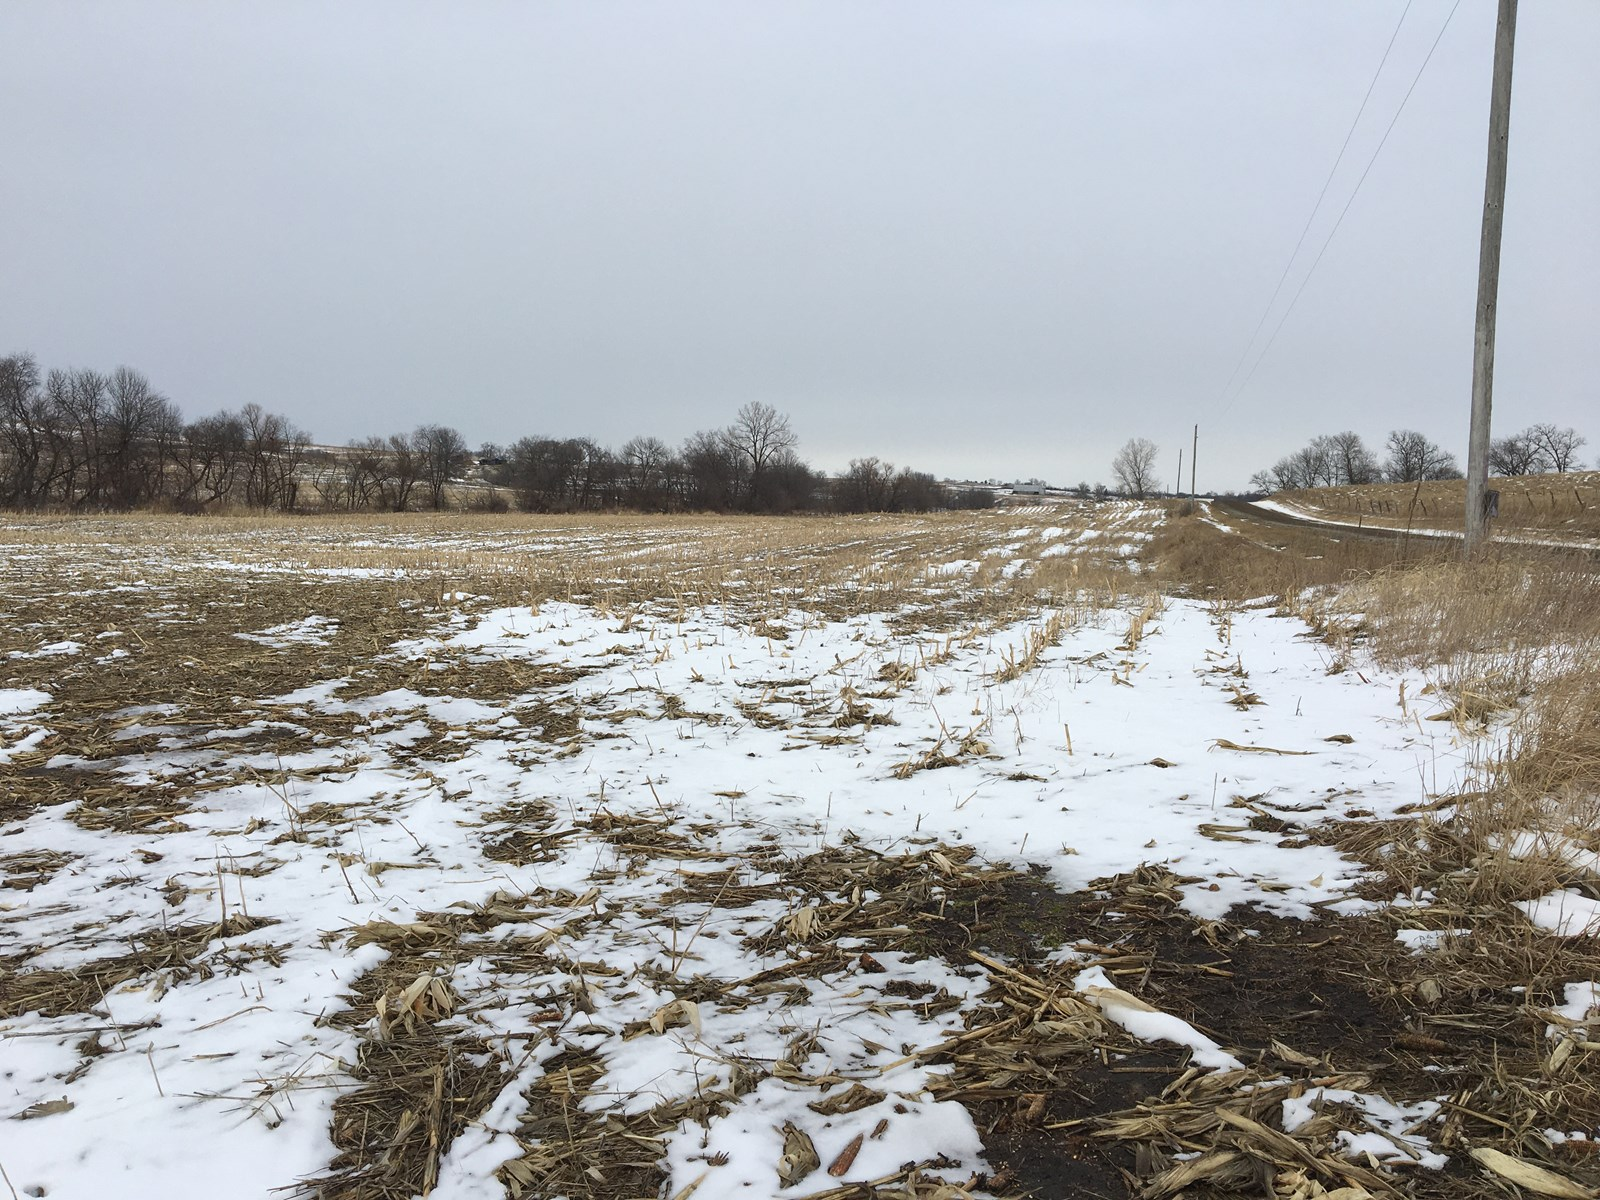 78+/- Acres, Row Crop, Bottom & Hill – Tract 2 of 3